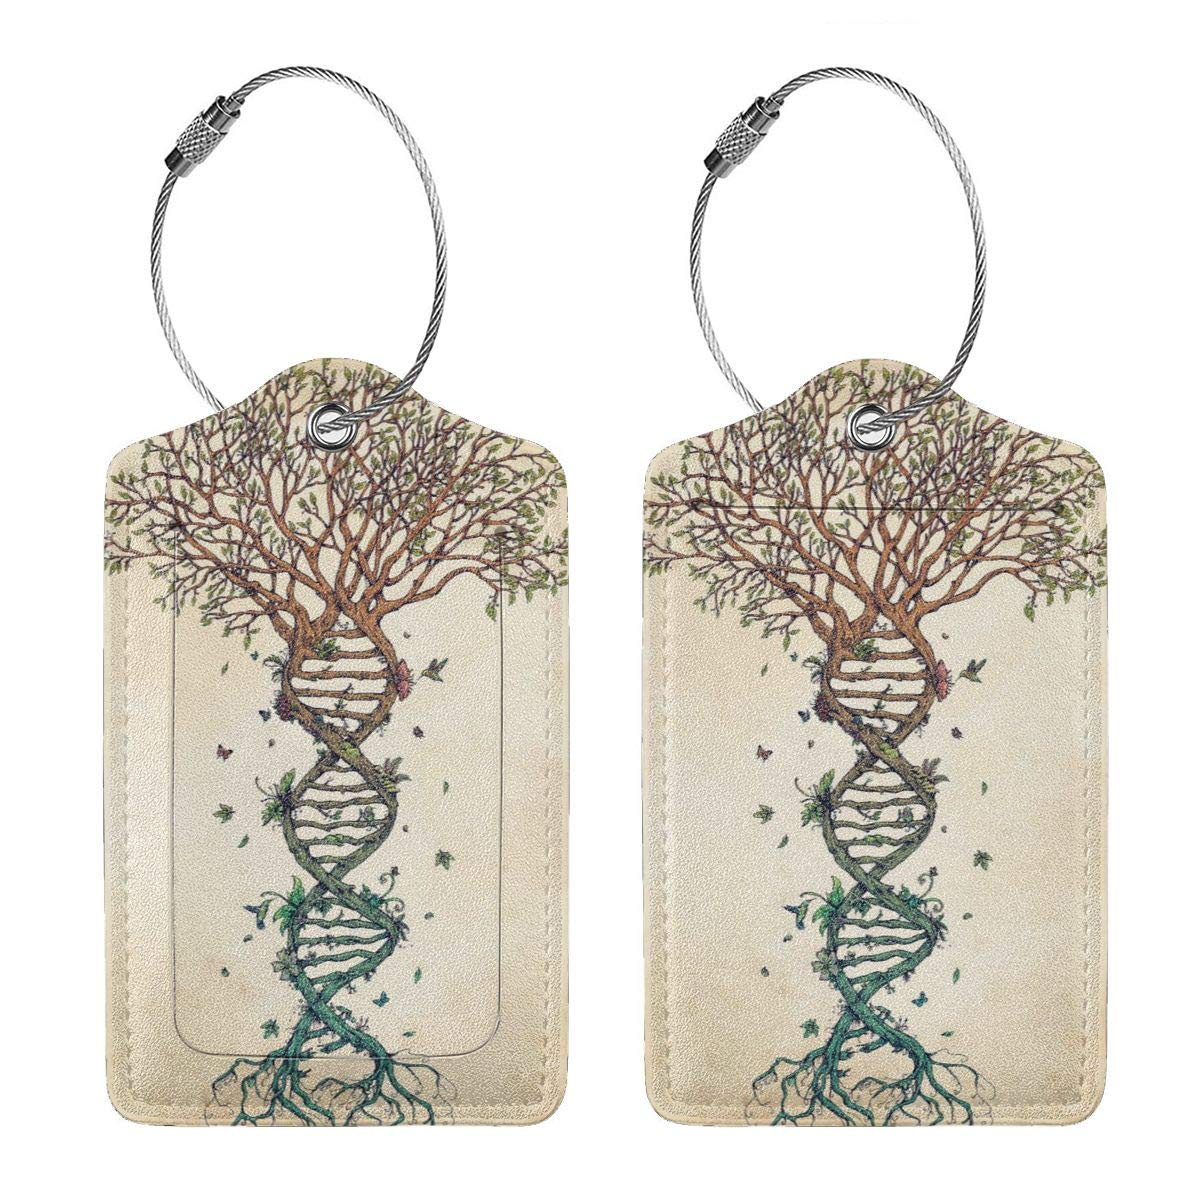 DNA Tree of Life 2.7 x 4.6 Blank Tag Key Tags for Christmas Birthday Couples Gift Leather Luggage Tags Full Privacy Cover and Stainless Steel Loop 1 2 4 Pcs Set